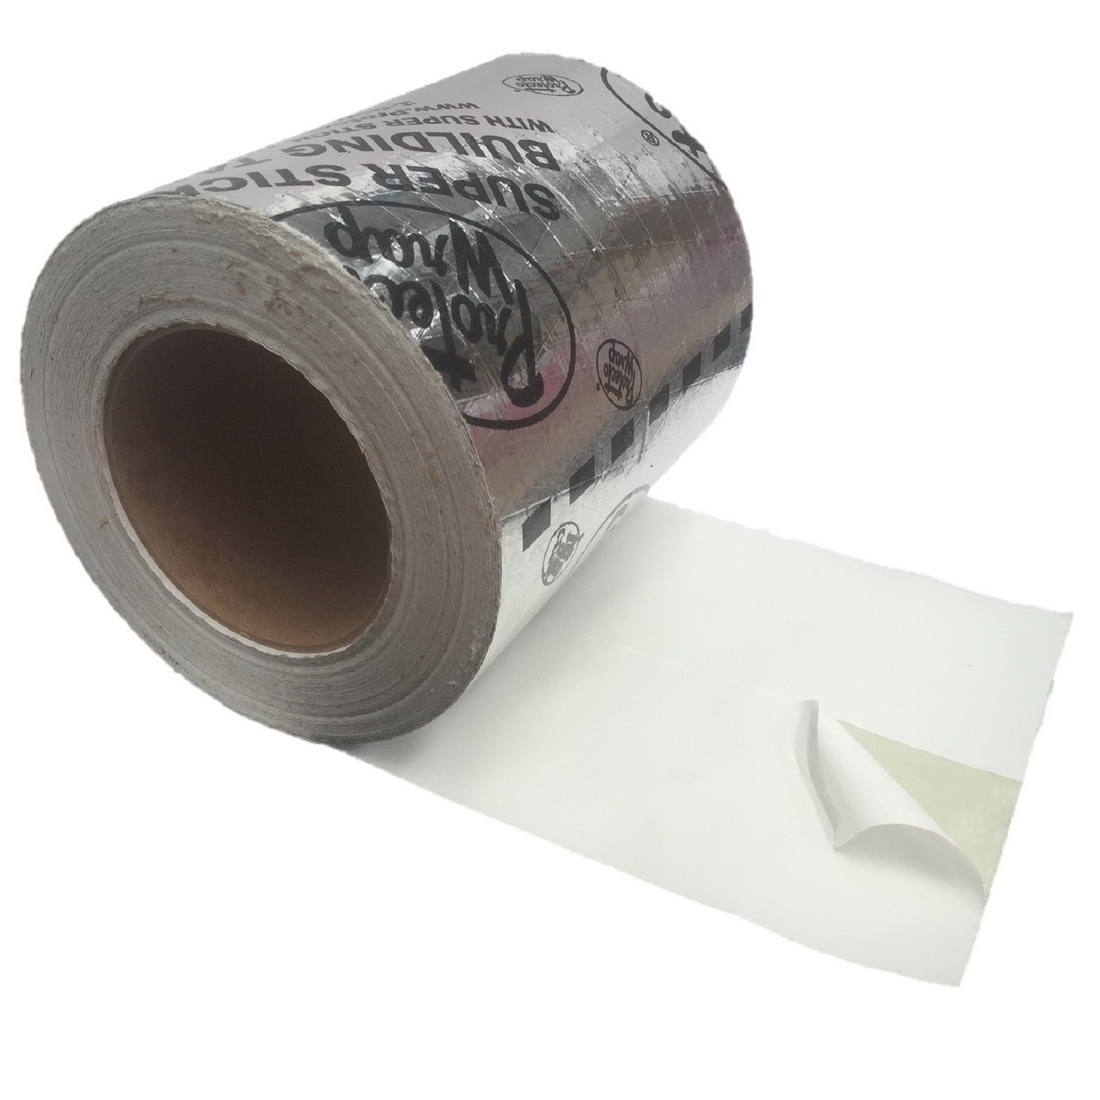 Protecto Superstick Building Sill Tape 150mm x 23m